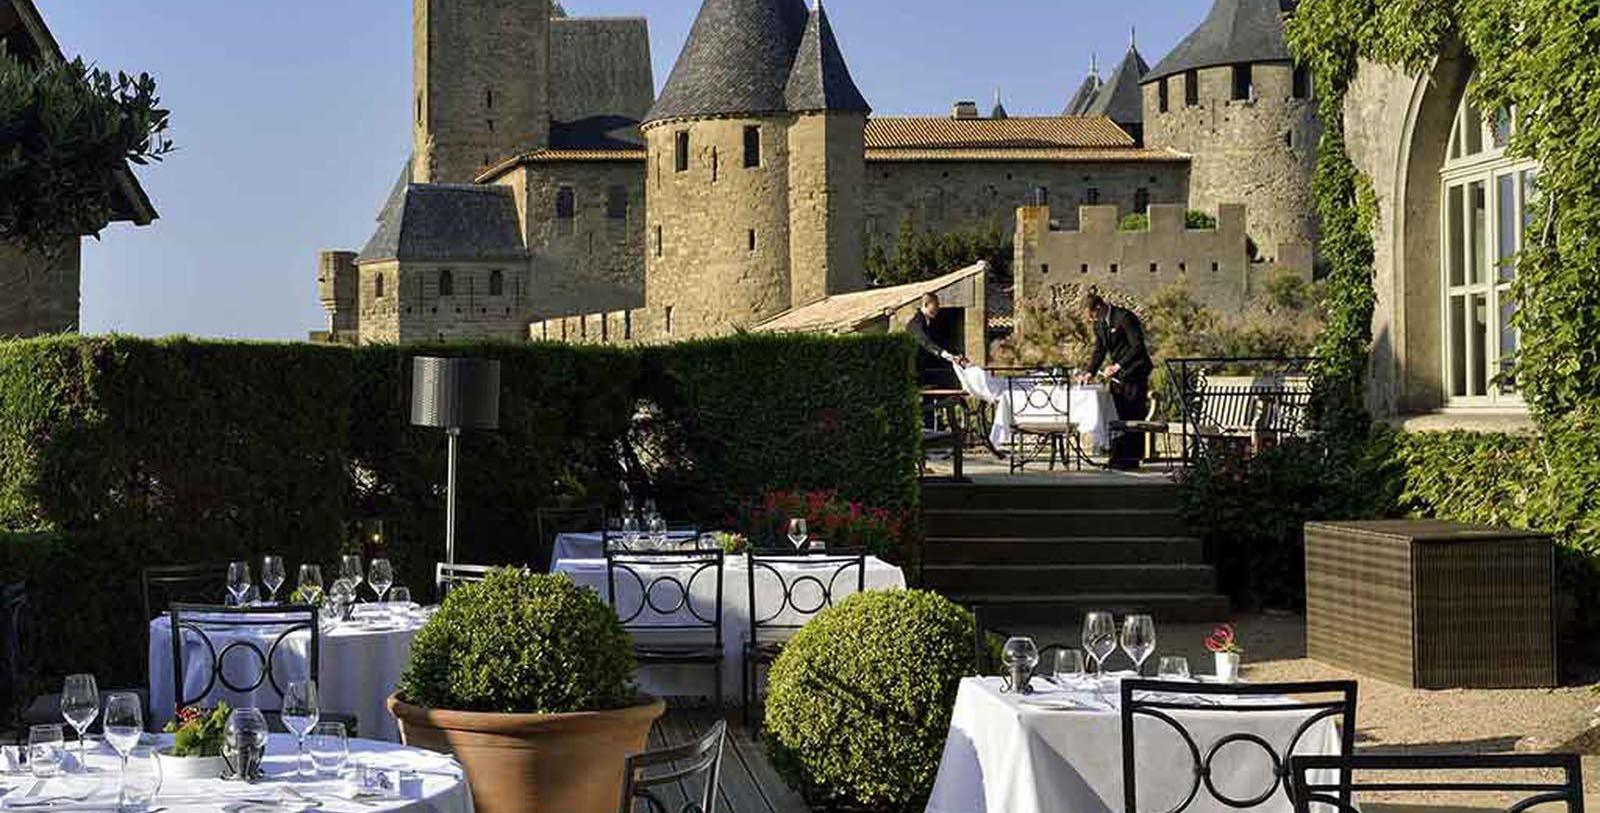 Image of Outdoor Dining Area Hôtel de la Cité Carcassonne - MGallery by Sofitel, 1909, Member of Historic Hotels Worldwide, in Carcassonne, France, Experience